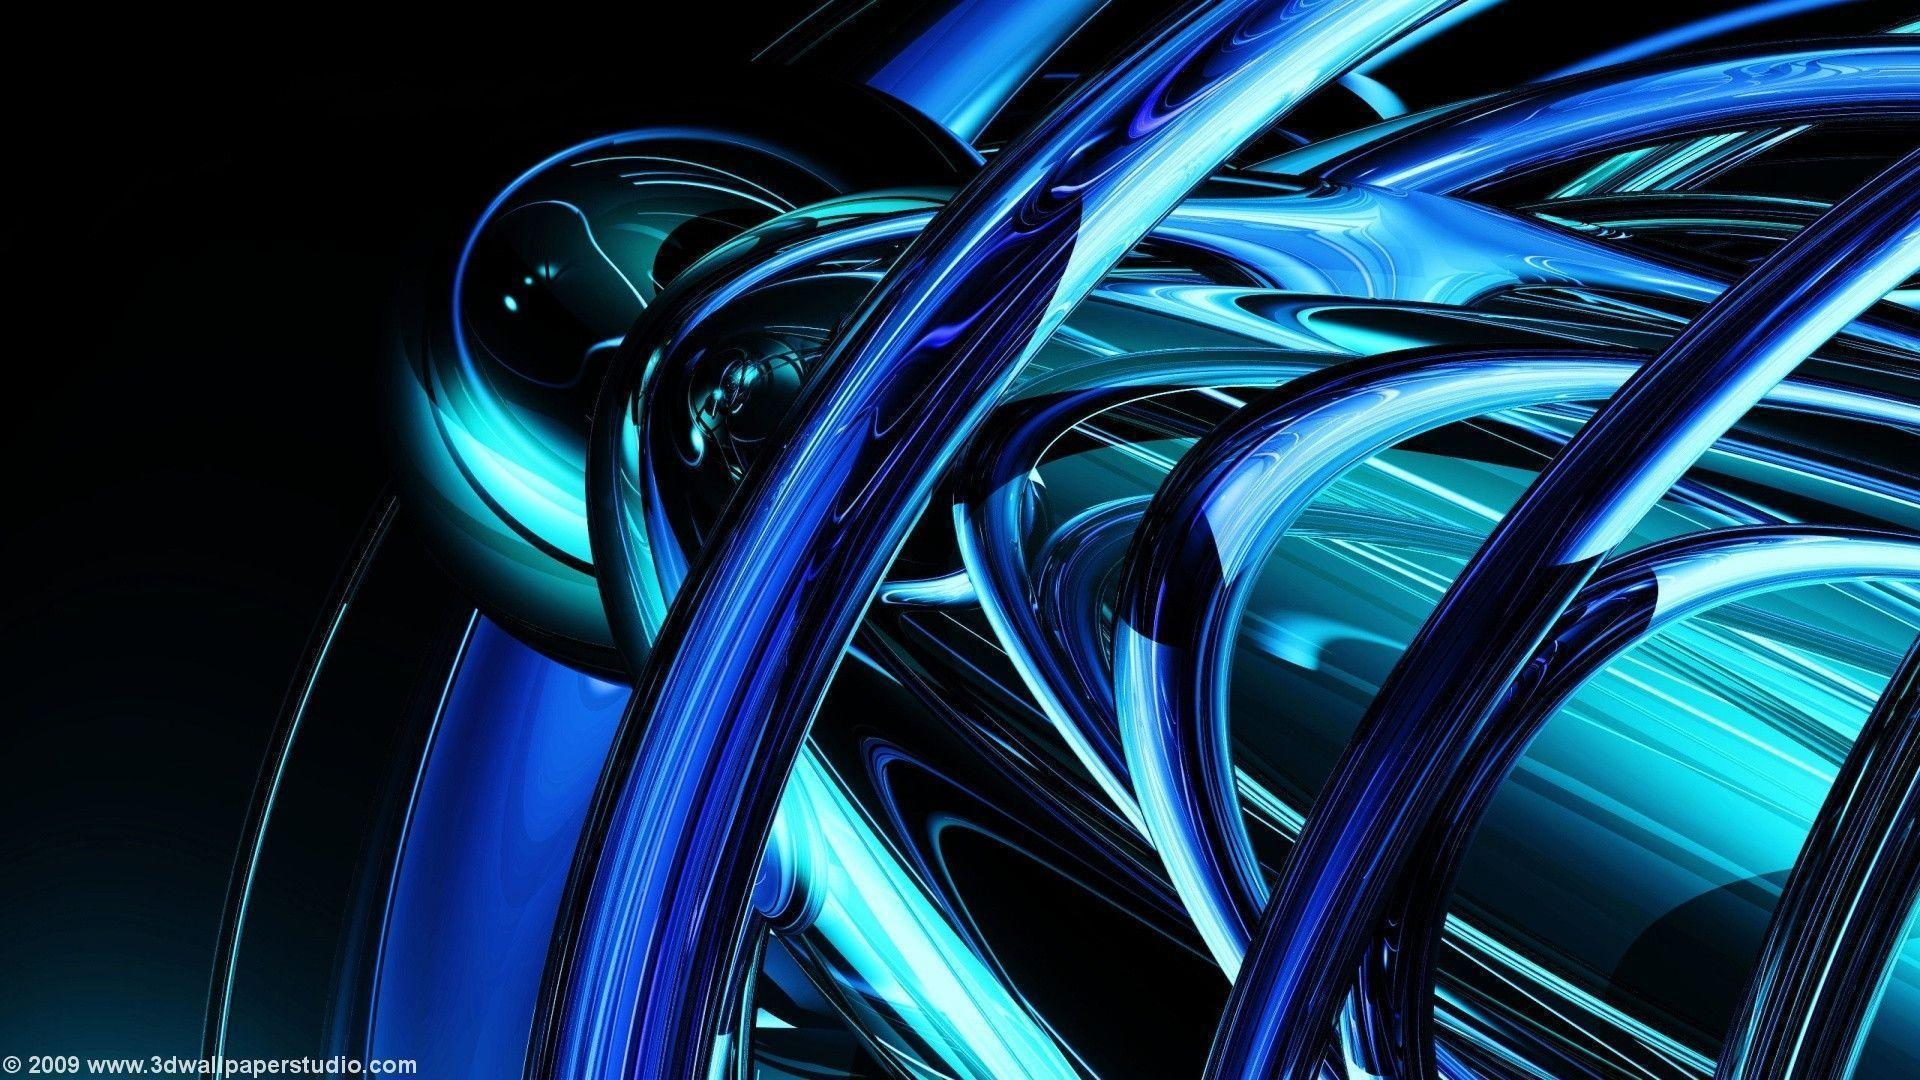 abstract 3d wallpaper 1920x1080 - photo #26